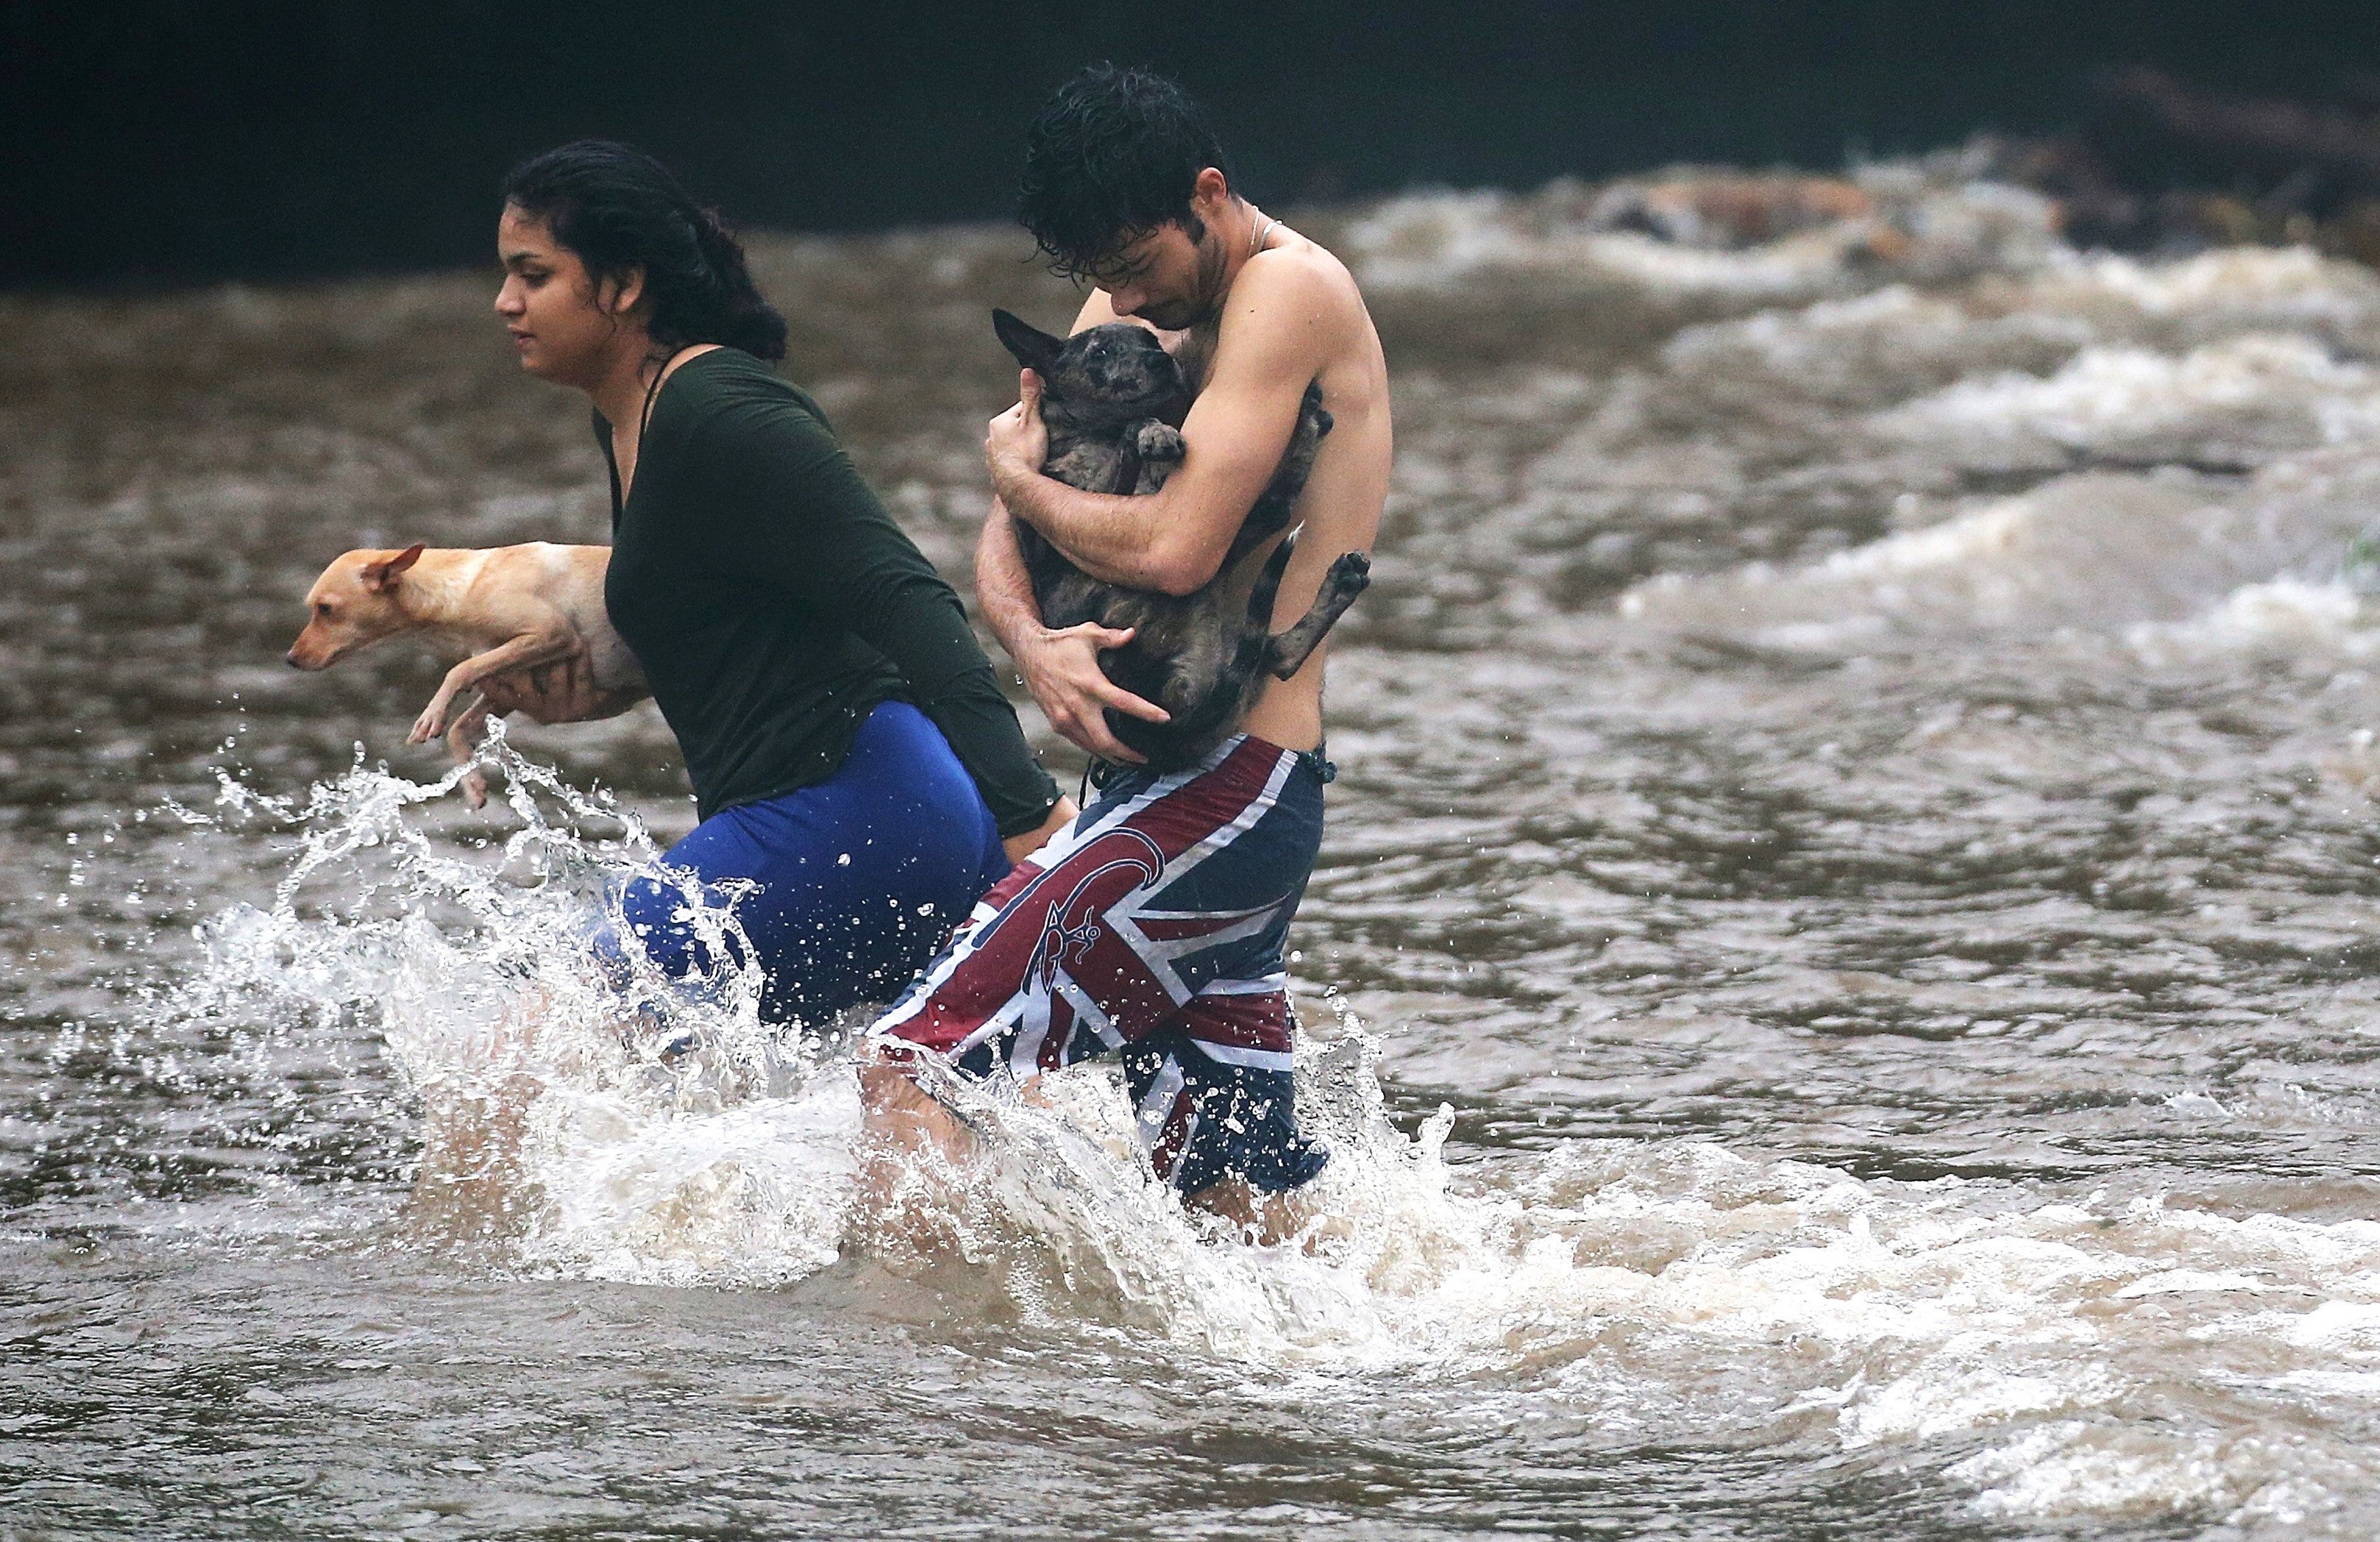 HILO, HI - AUGUST 23:  Residents carry dogs through flood waters to dry land, after playing in the water briefly on the Big Island on August 23, 2018 in Hilo, Hawaii. Hurricane Lane has brought more than a foot of rainfall to some parts of the Big Island which is under a flash flood warning.  (Photo by Mario Tama/Getty Images)